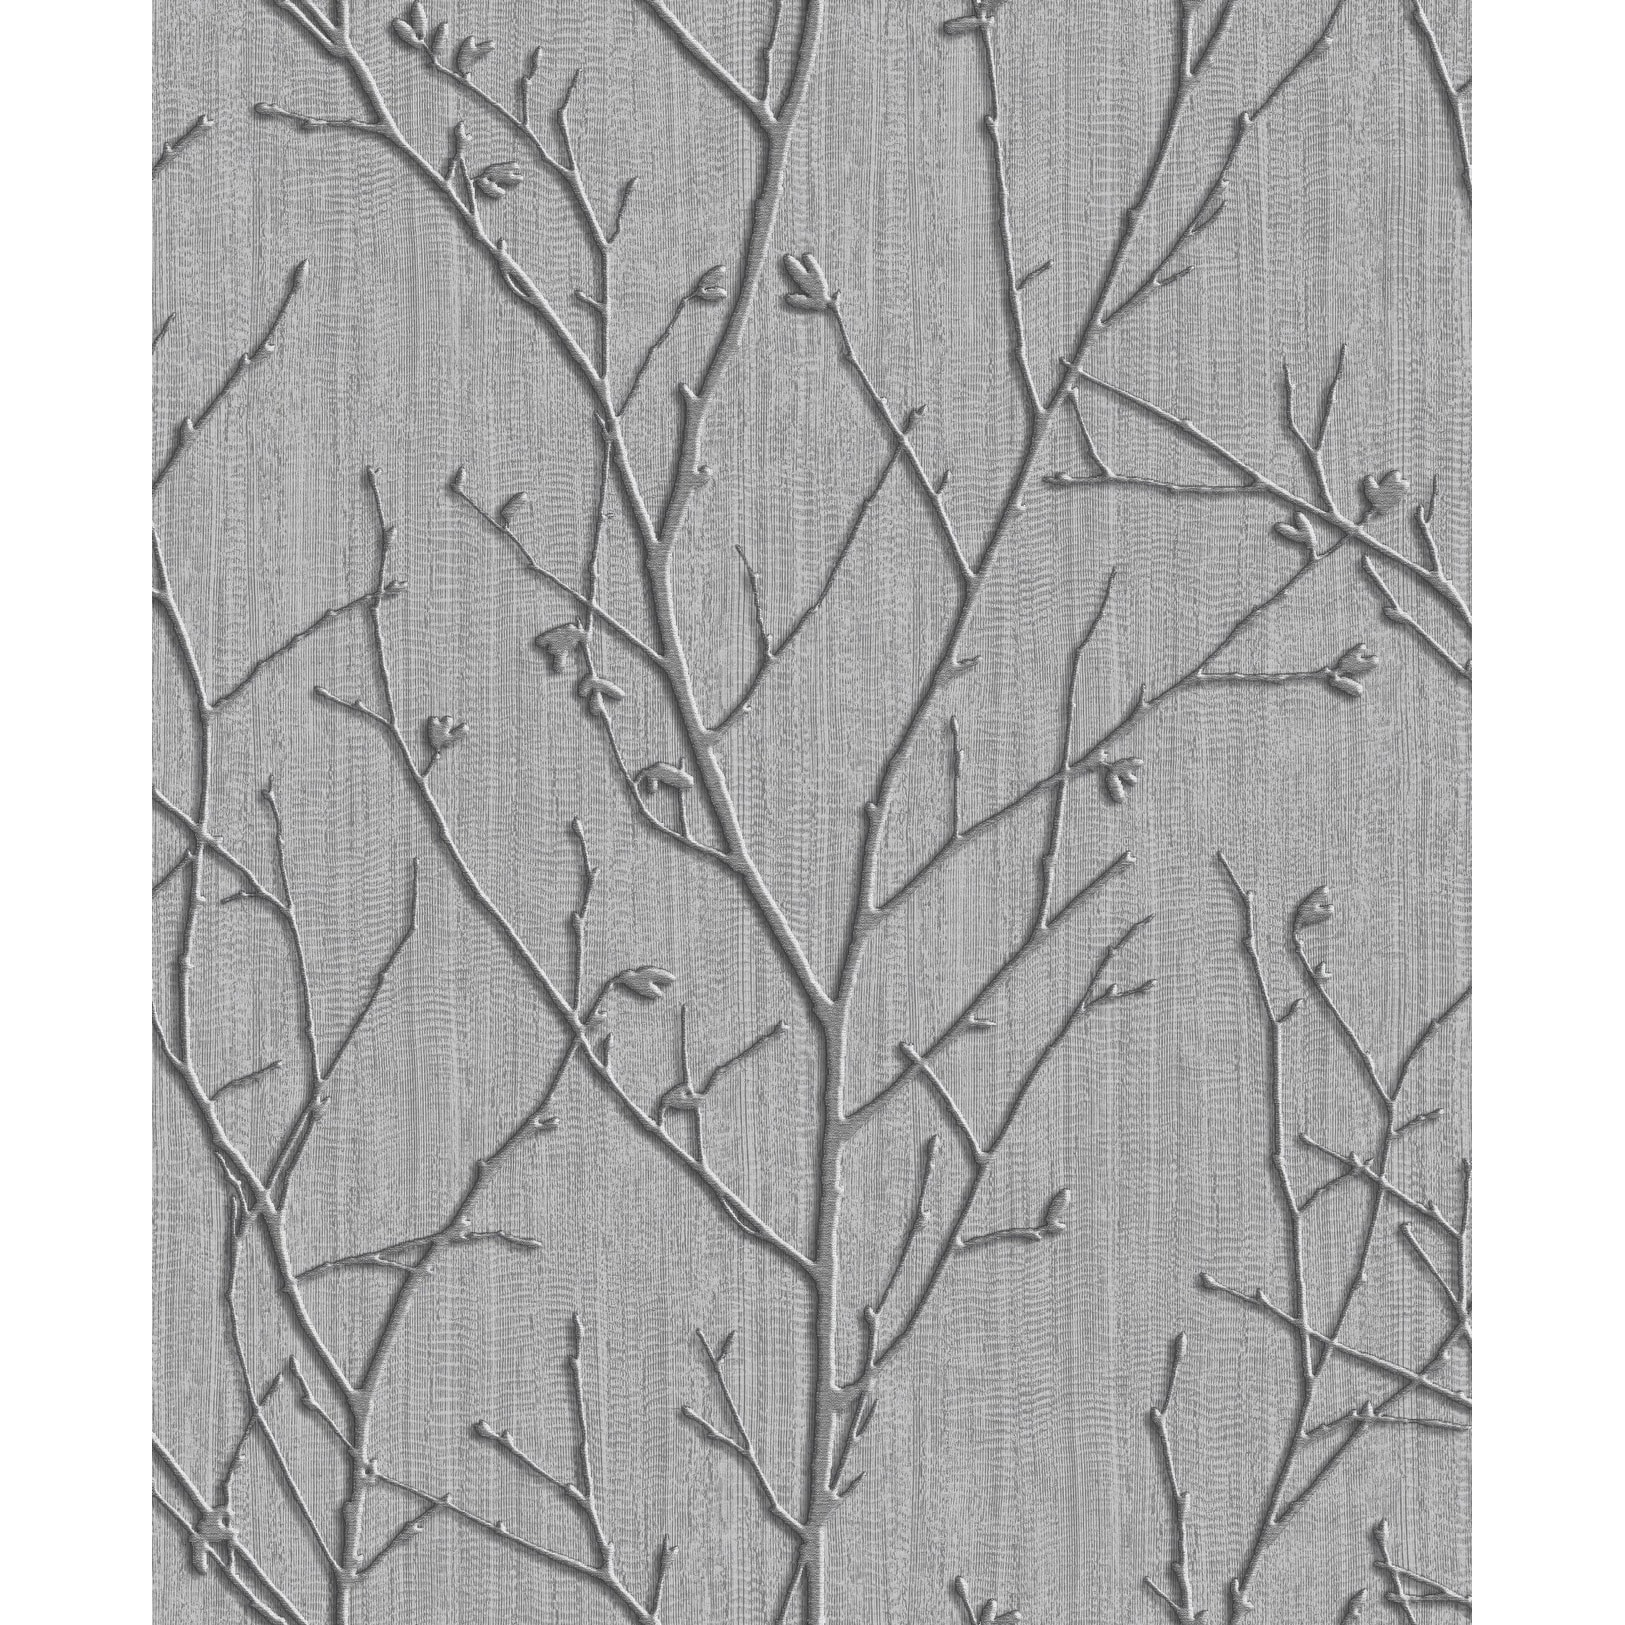 Heavyweight Vinyl Branch // Tree Design Stunning Leather Look Paste the Wall